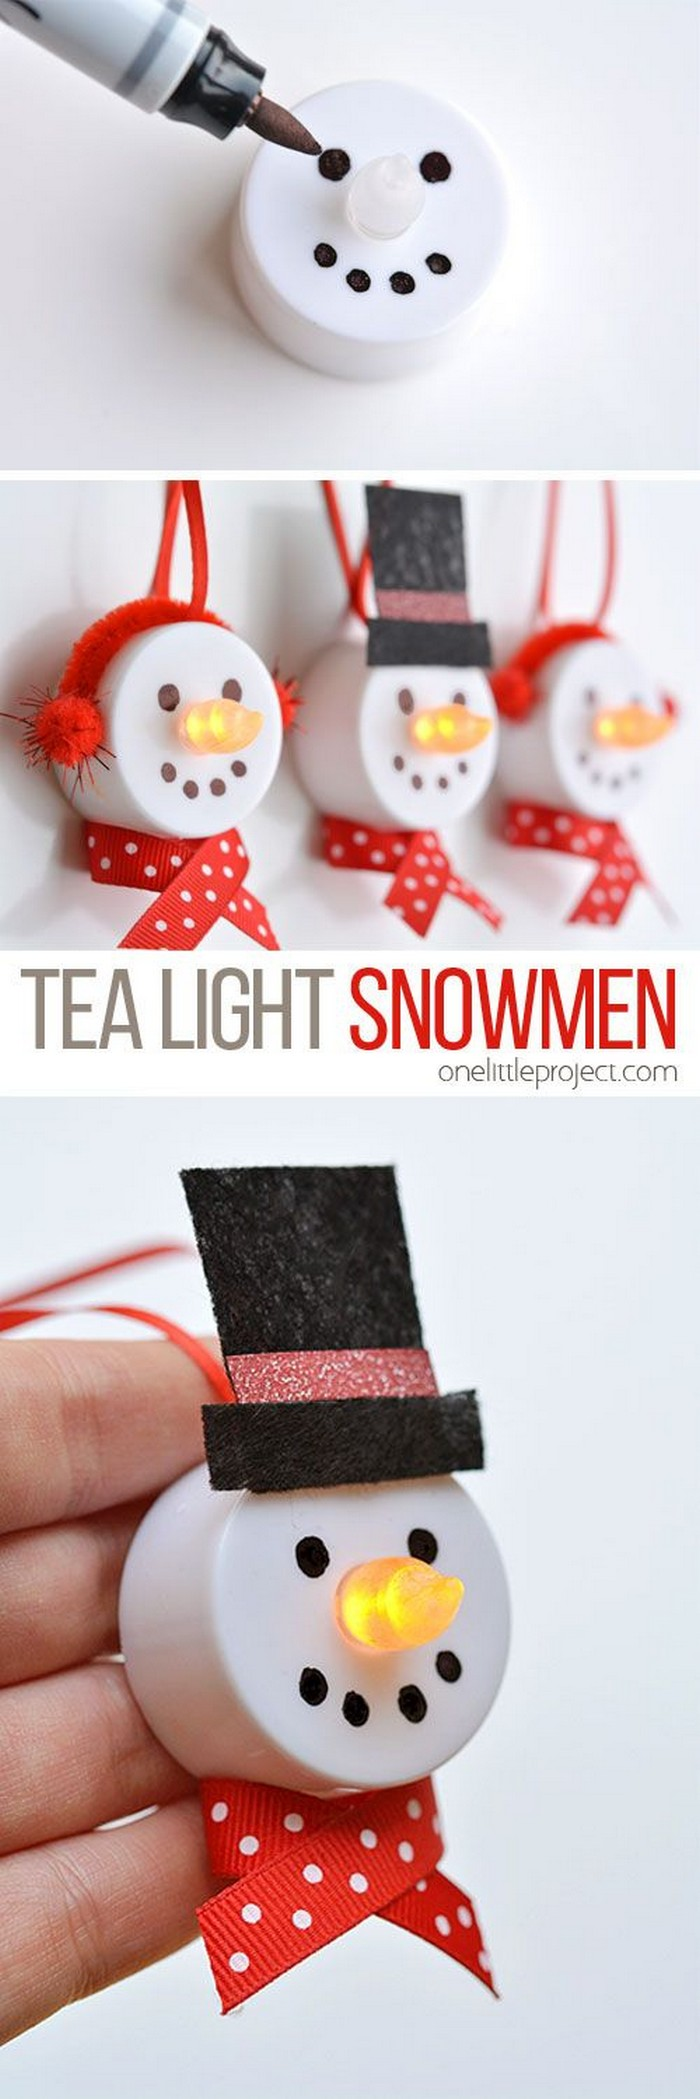 Tea Light Snowman Ornaments 25 Interesting Ideas to Make Easy Christmas Crafts